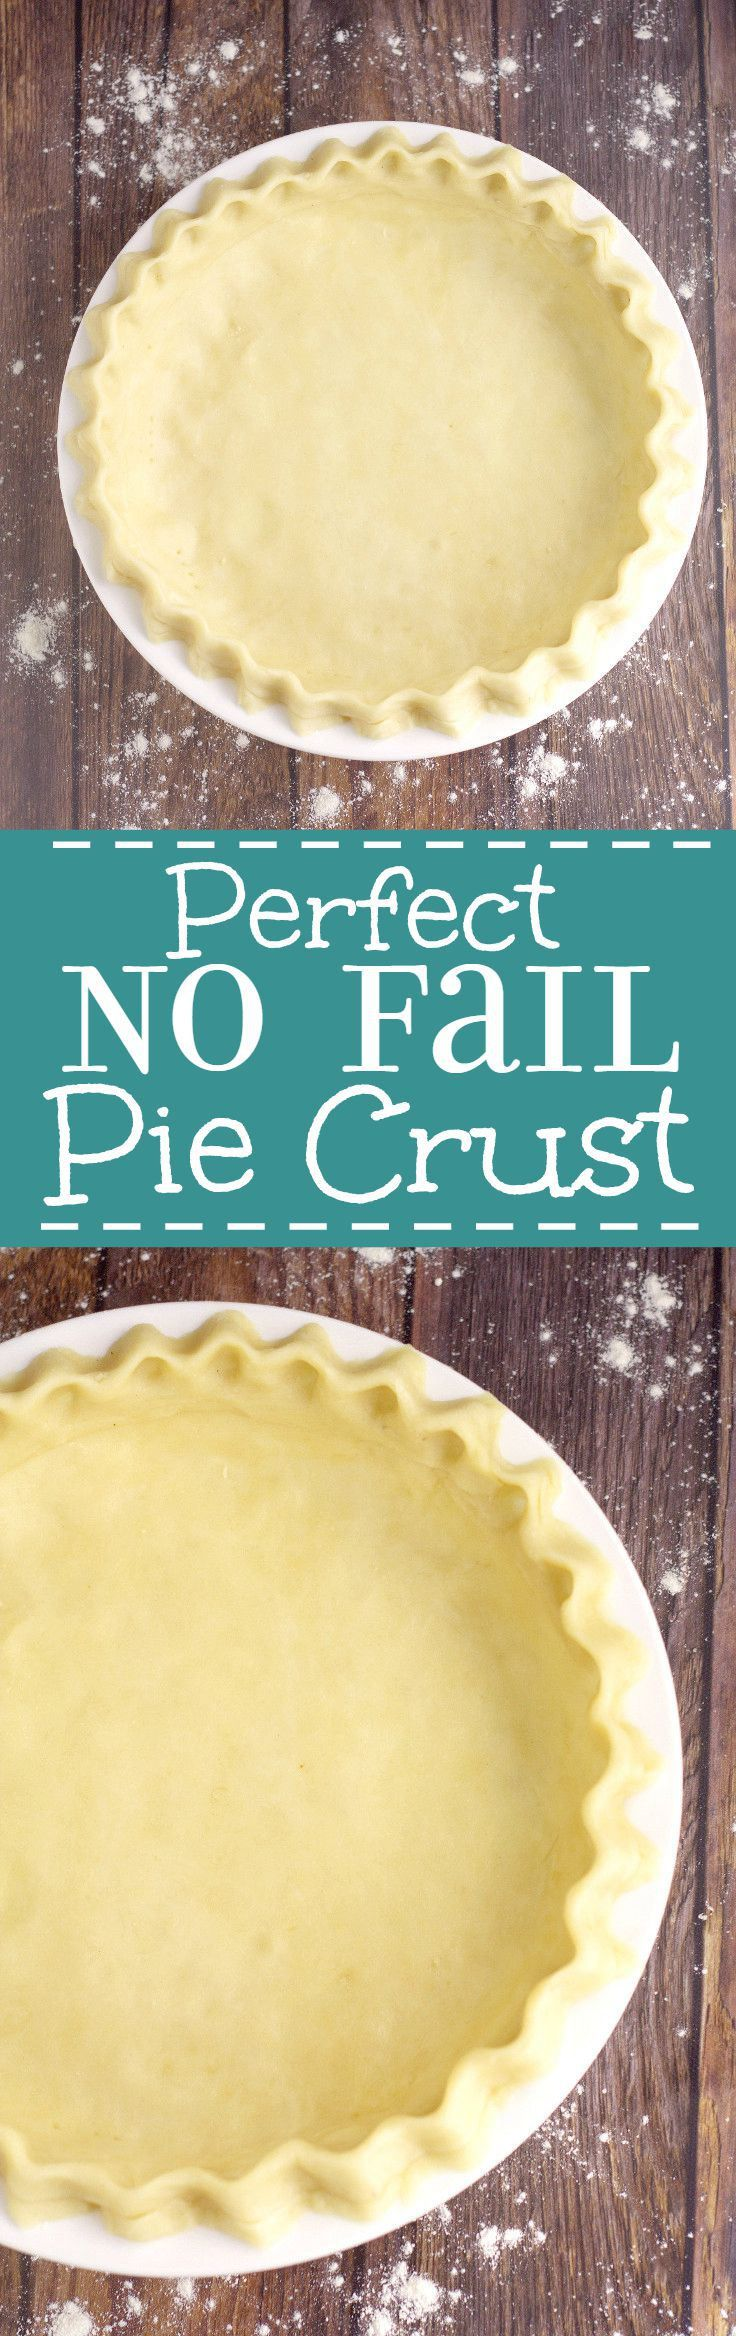 An easy, flaky, no-fail pie crust recipe that comes out perfect, flaky, and delicious. Every. Time. This No Fail Pie Crust Recipe will be the star of the show! It's the only pie crust recipe that I use. Love it.